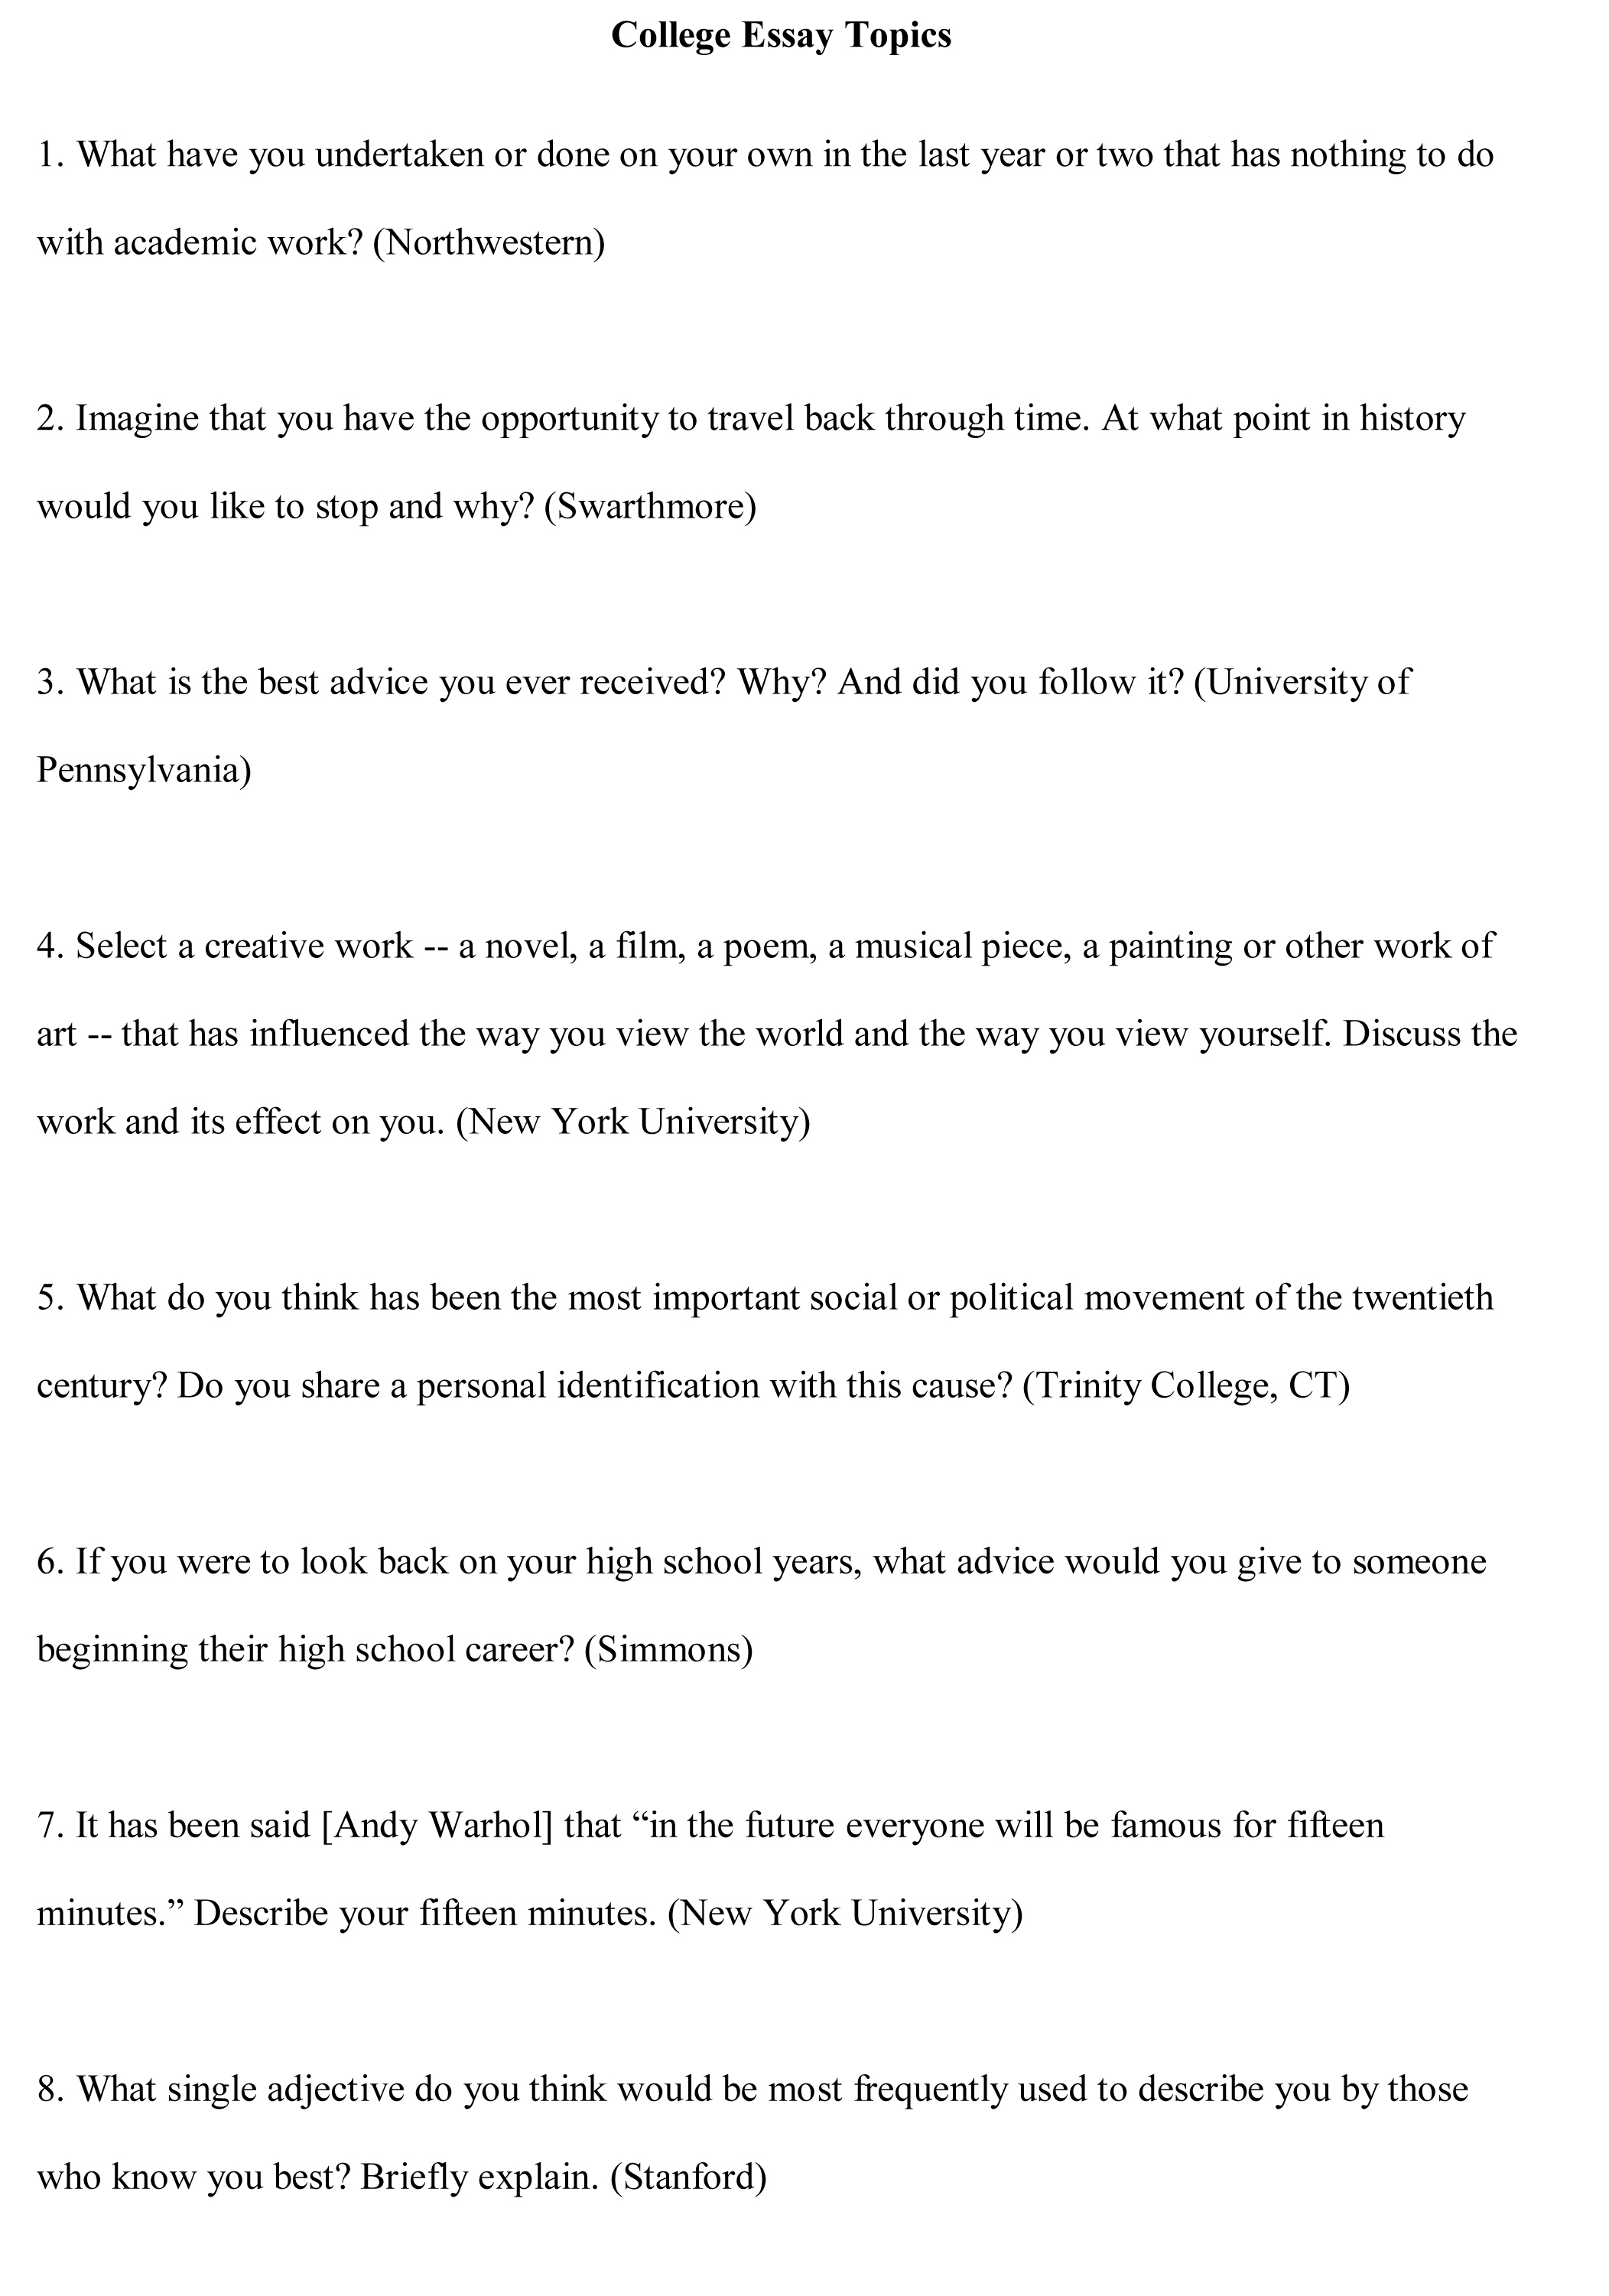 005 College Essay Prompt Examples Example Topics Free Unforgettable Uc #1 Writing 2 Full